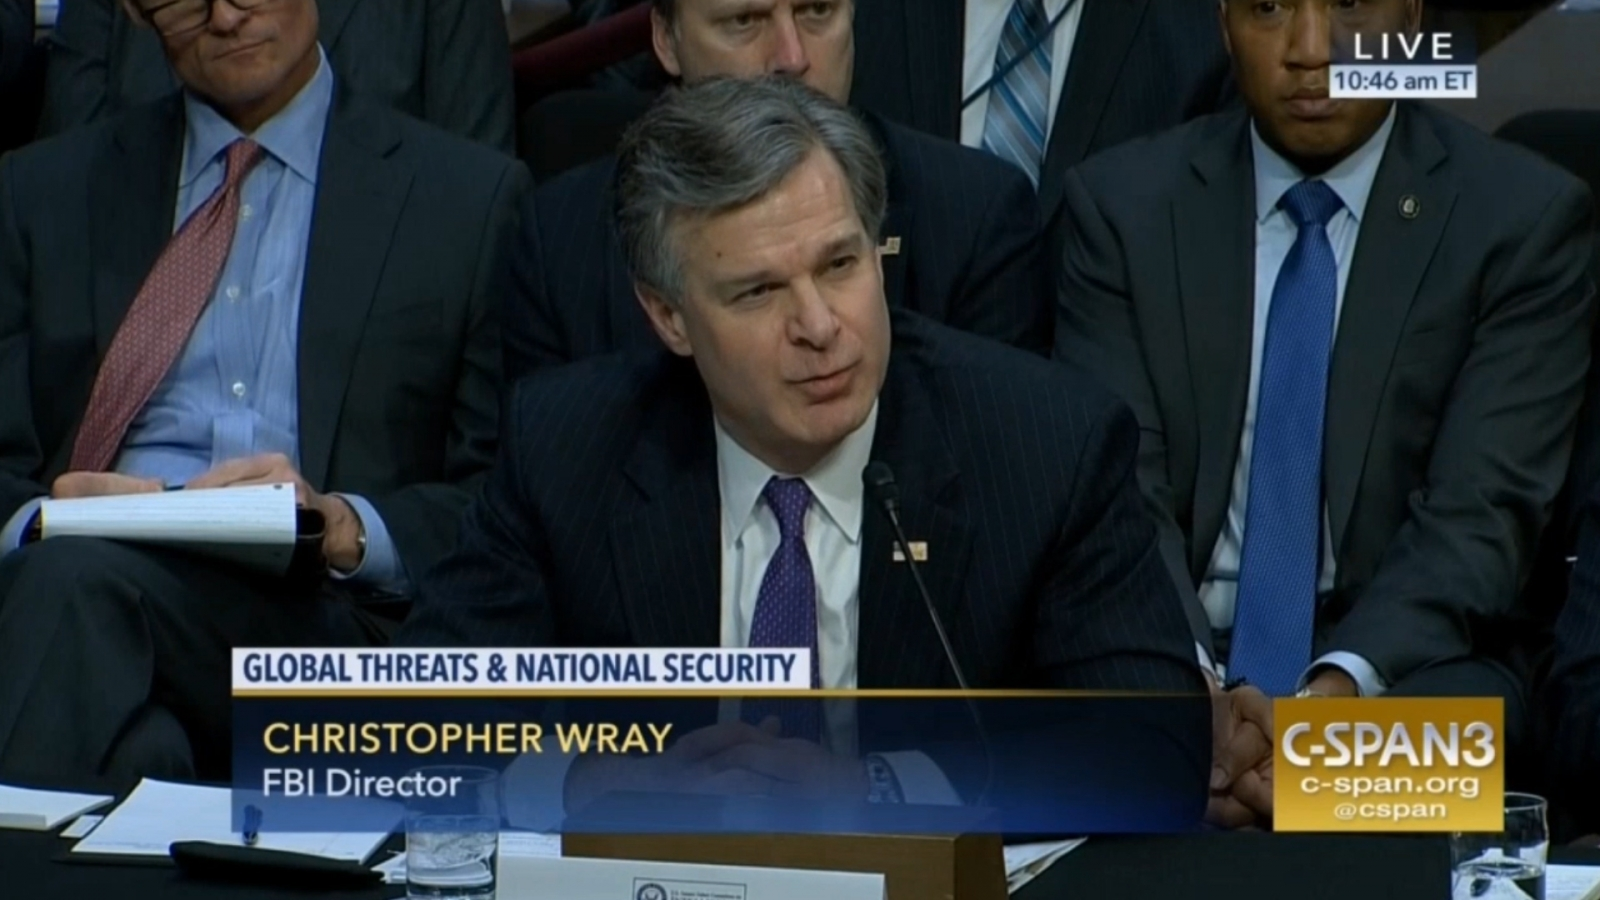 FBI Director Christopher Wray testifying before Senate Intelligence Committee